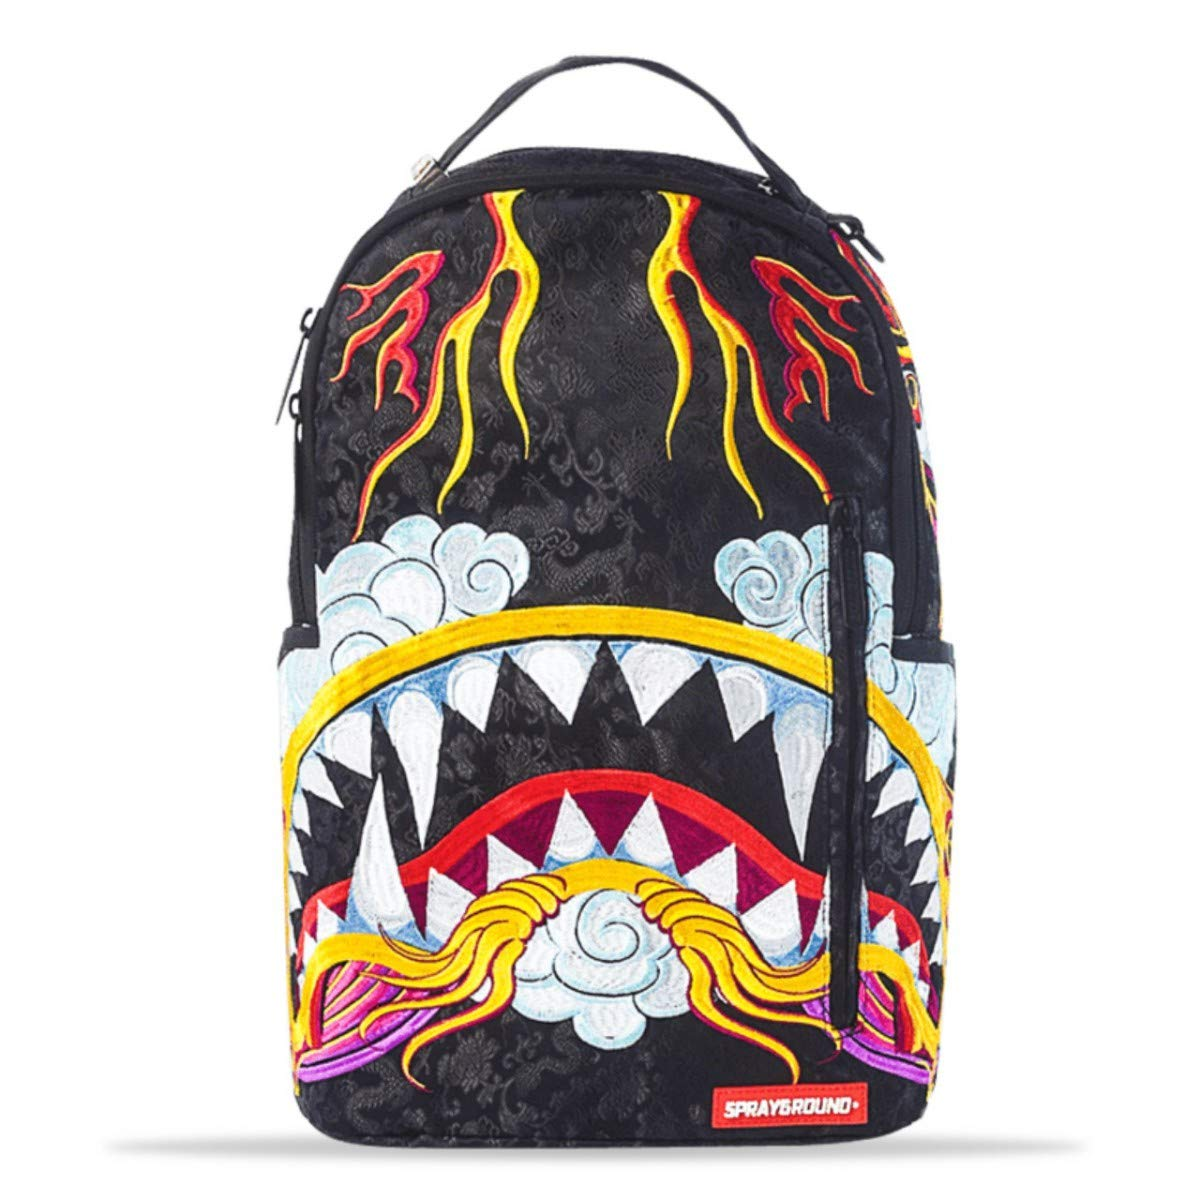 Sprayground Dragon Shark Backpack - Black